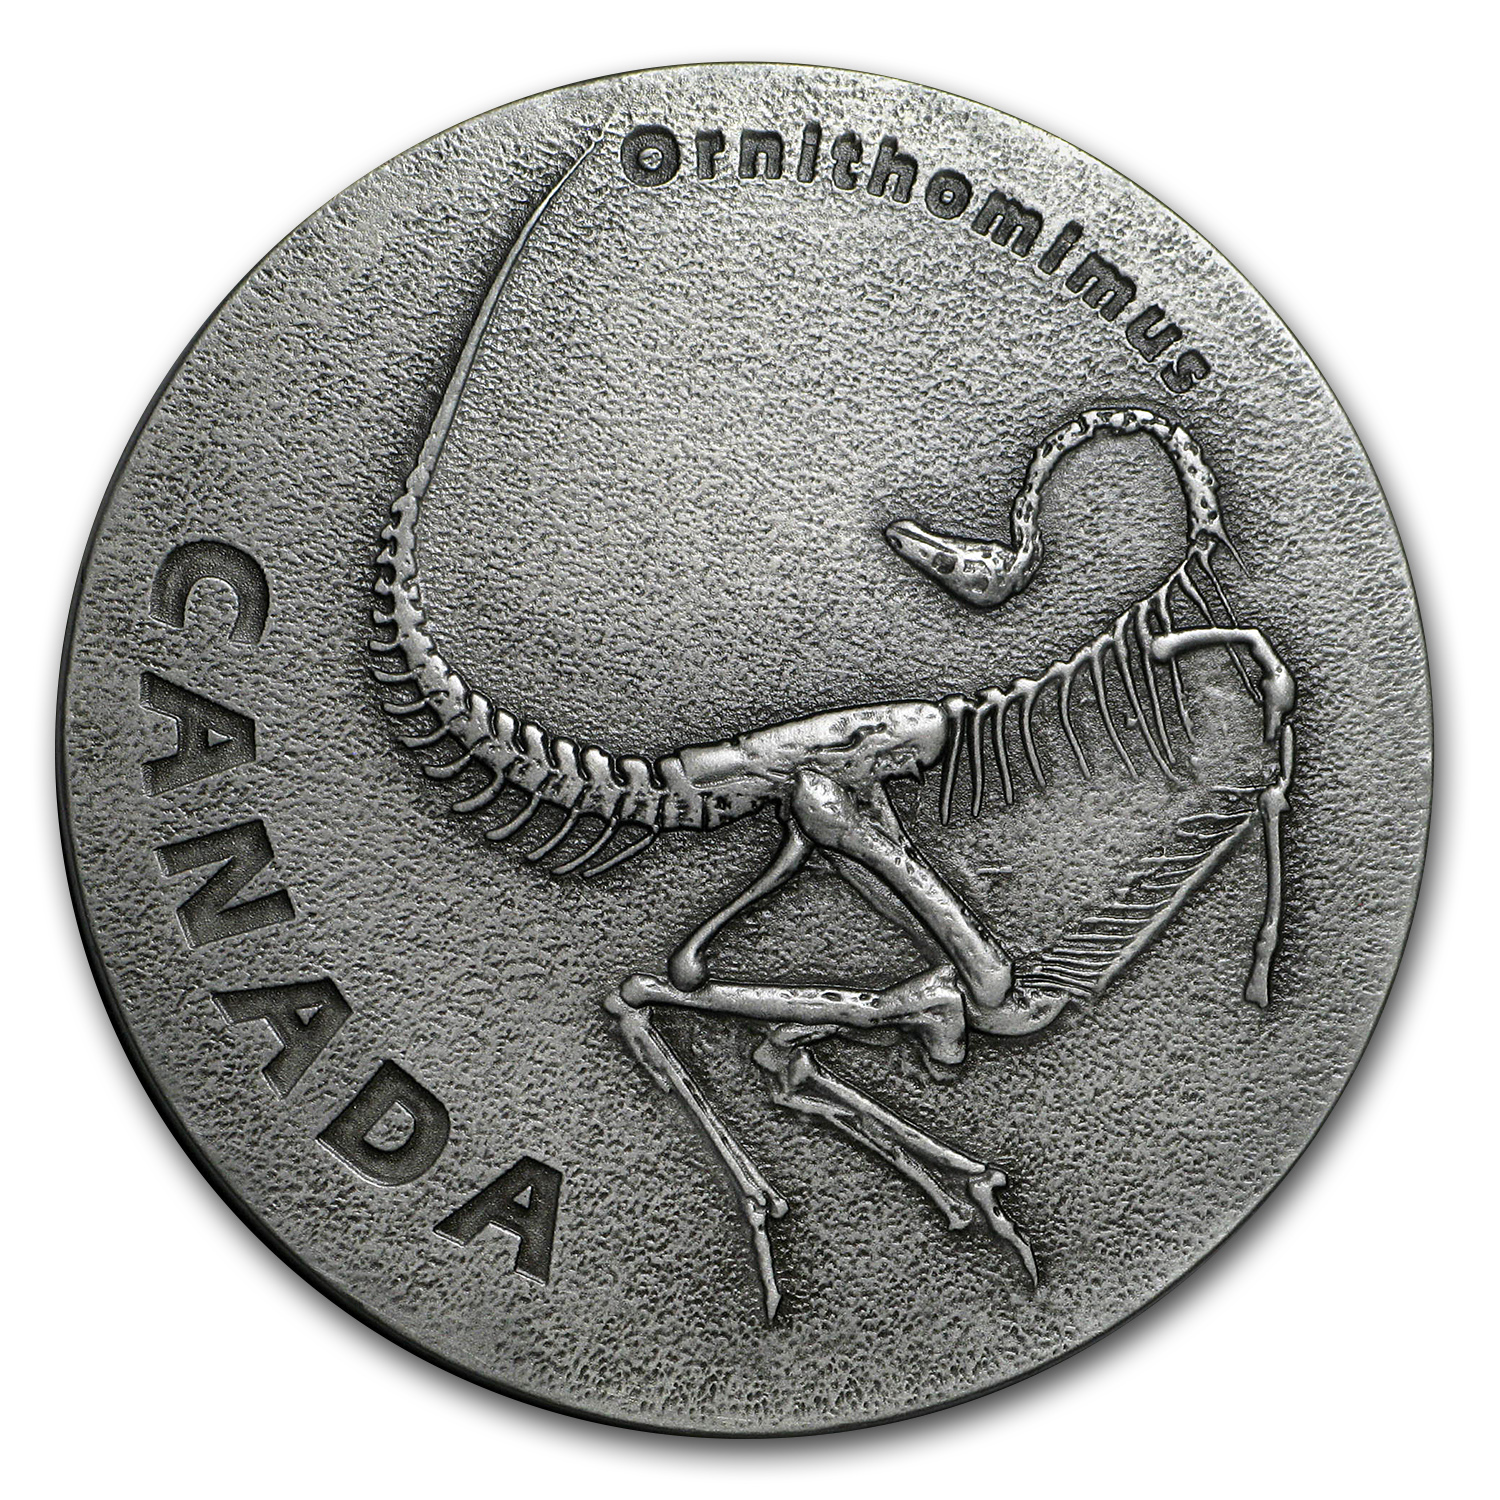 2017 Canada 1 oz Ag Ancient Canada: Ornithomimus (Antique Finish)